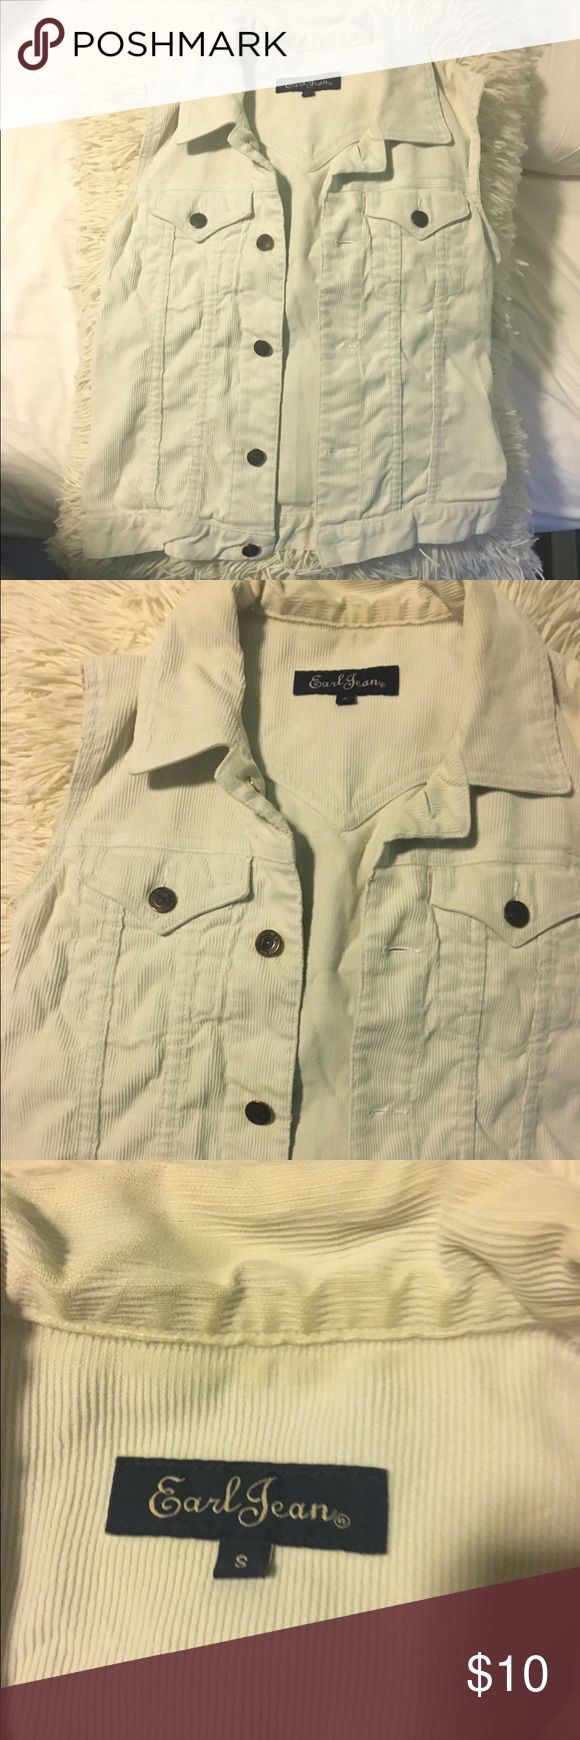 White Denim Vest Brand new, never worn! Earl Jeans Jackets & Coats Vests